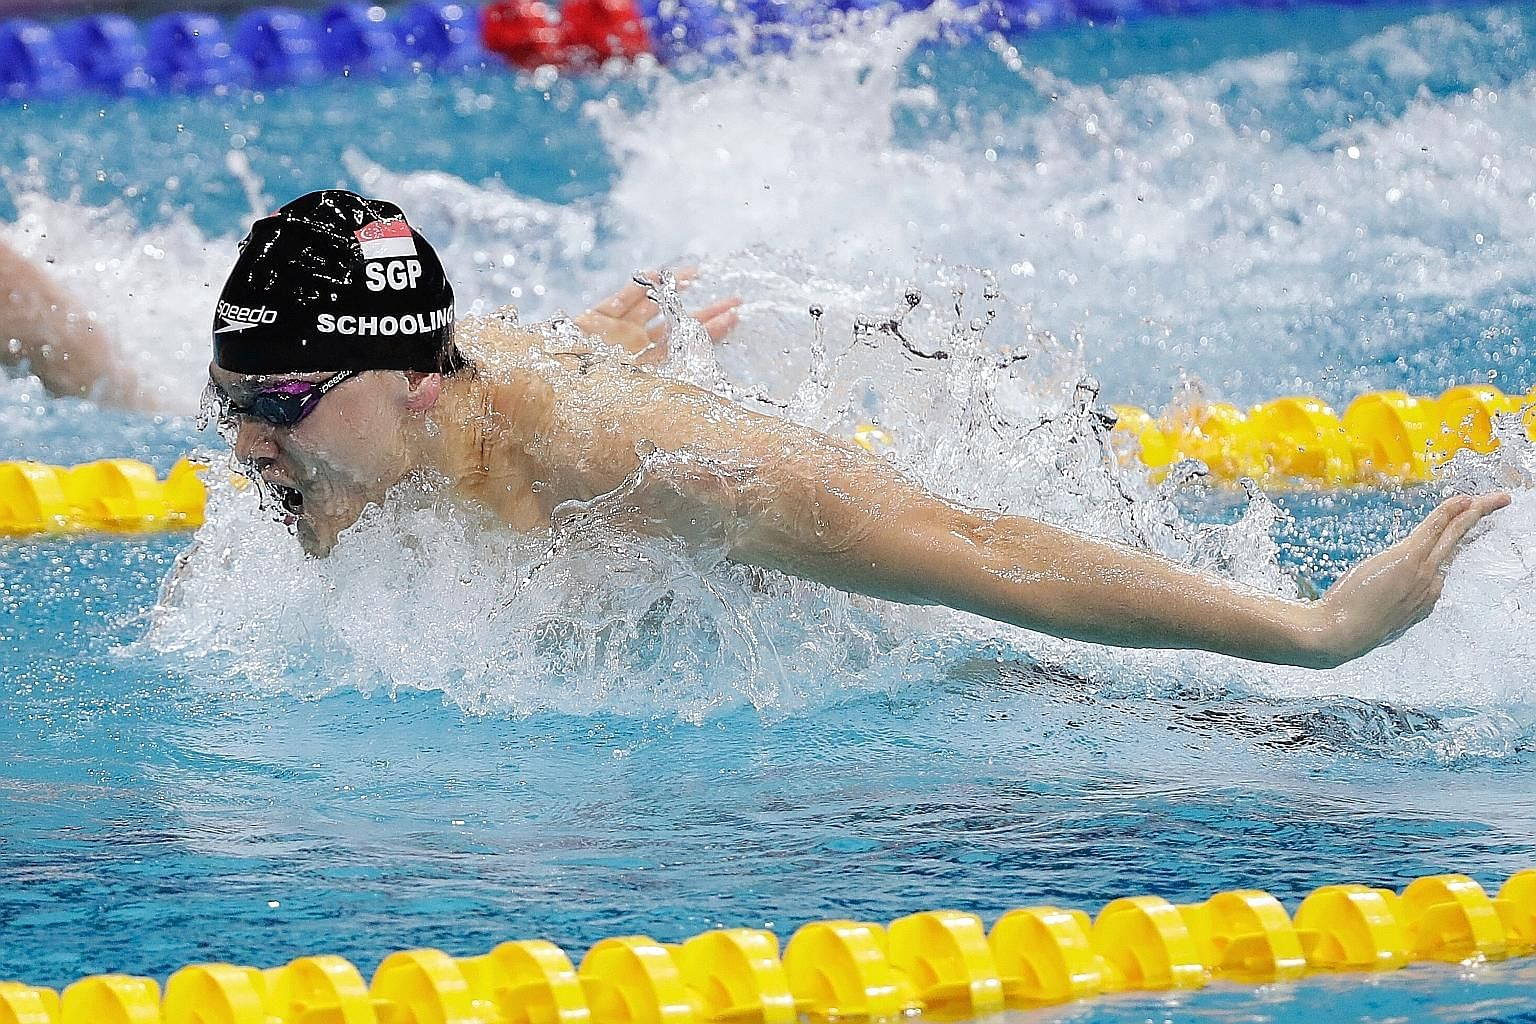 Olympic champion Joseph Schooling racing in the 100m butterfly final of the Fina Swimming World Cup at the OCBC Aquatic Centre last night. The 23-year-old finished fourth in 51.05sec and attributed the result partly to the lack of preparation time fo